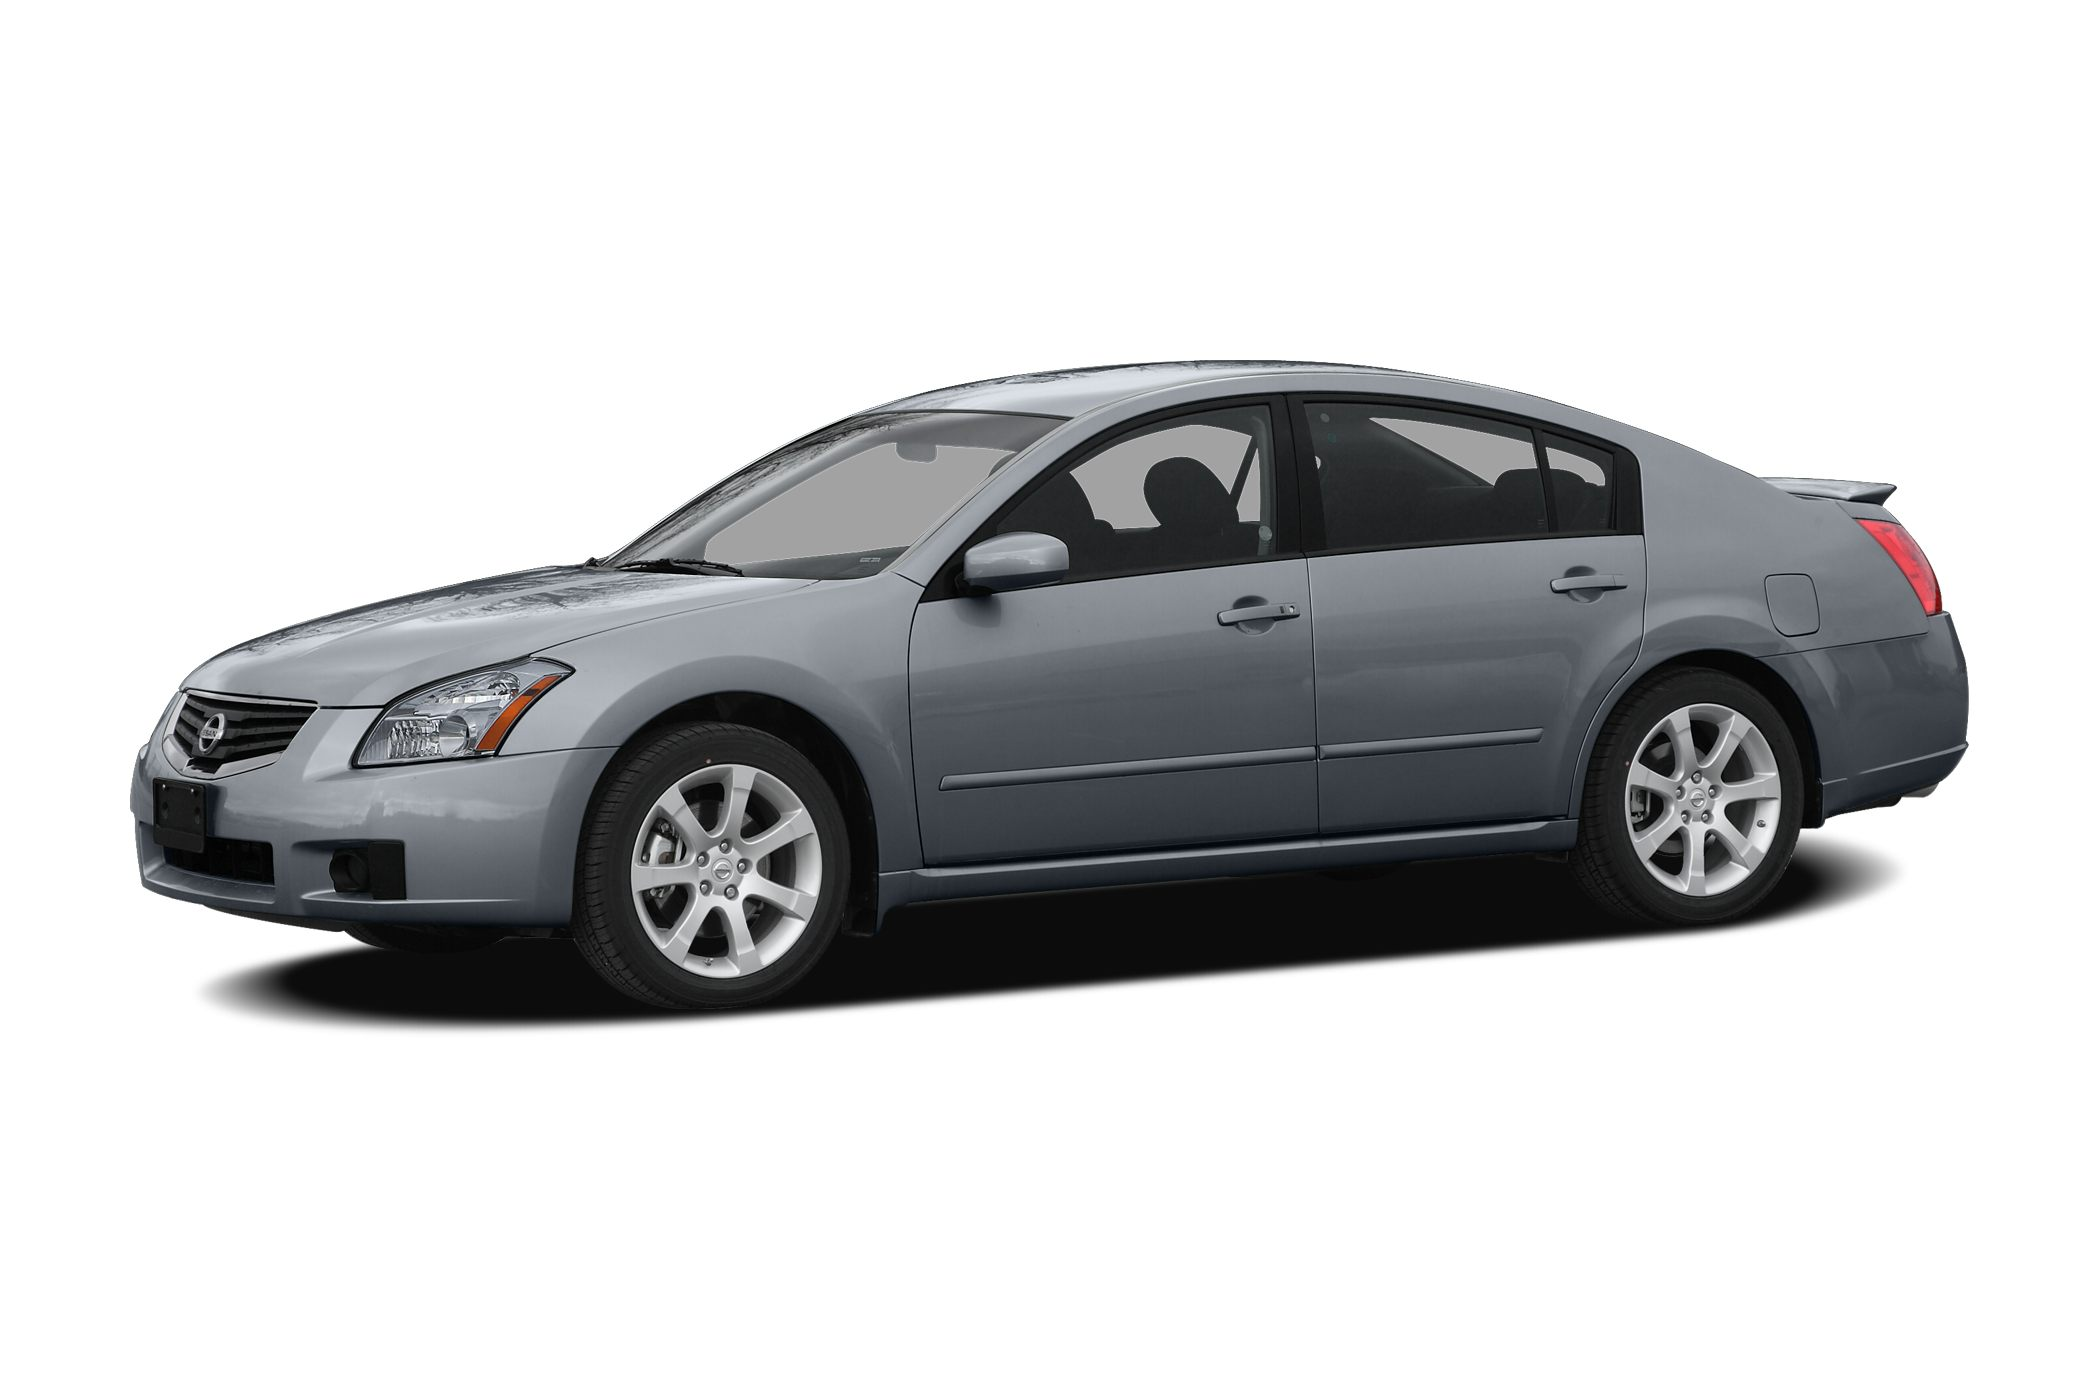 2006 Nissan Maxima 35 SE Are you READY for a Nissan Join us at Route 44 Toyota Scion How would